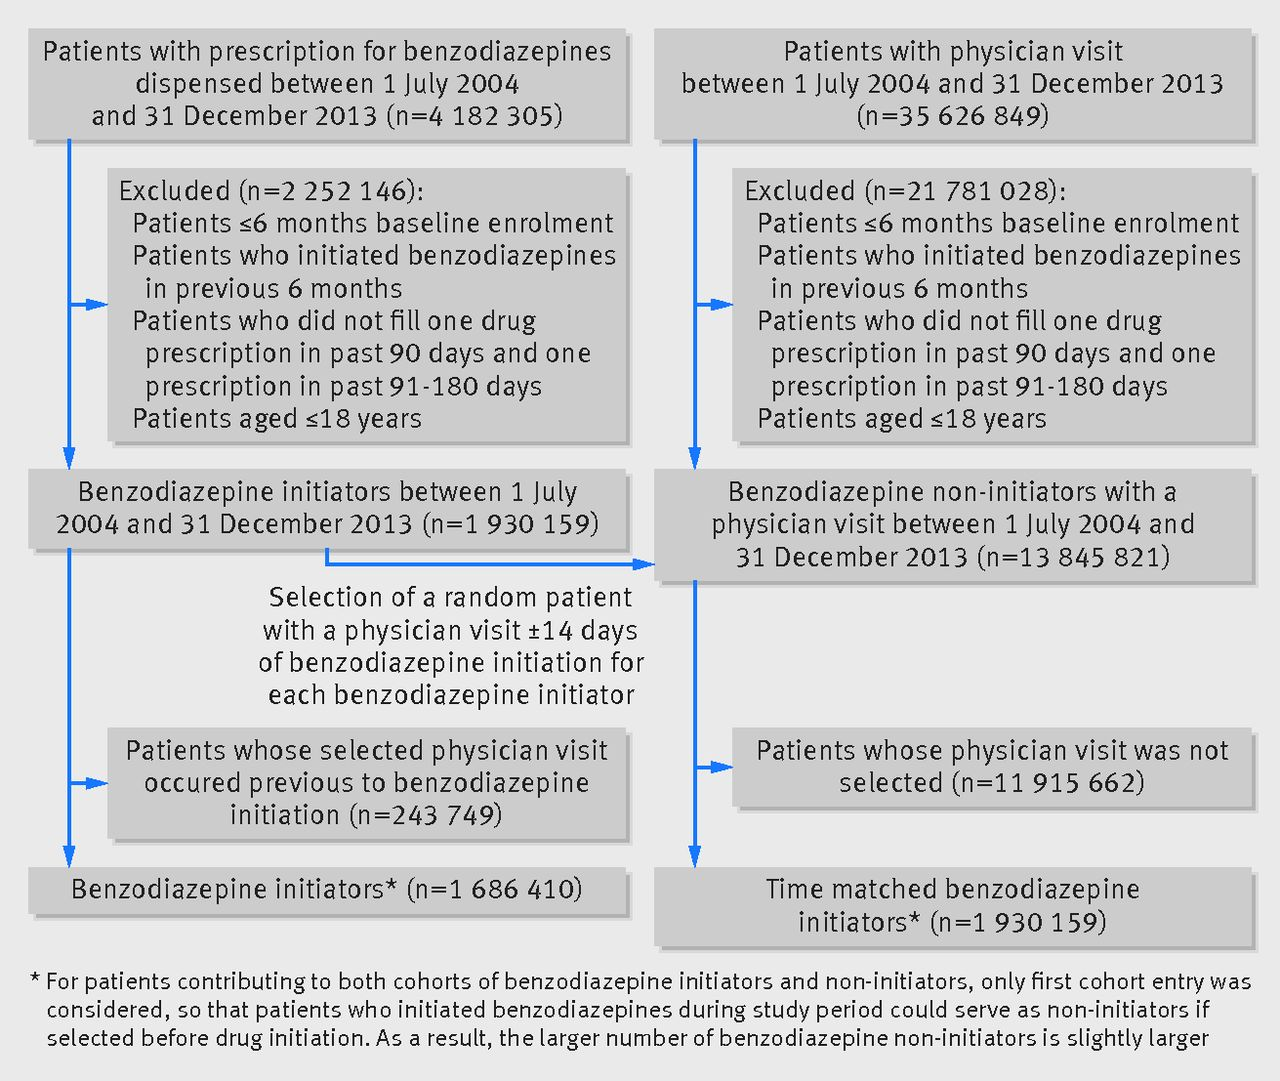 benzodiazepines and risk of all cause mortality in adults: cohort